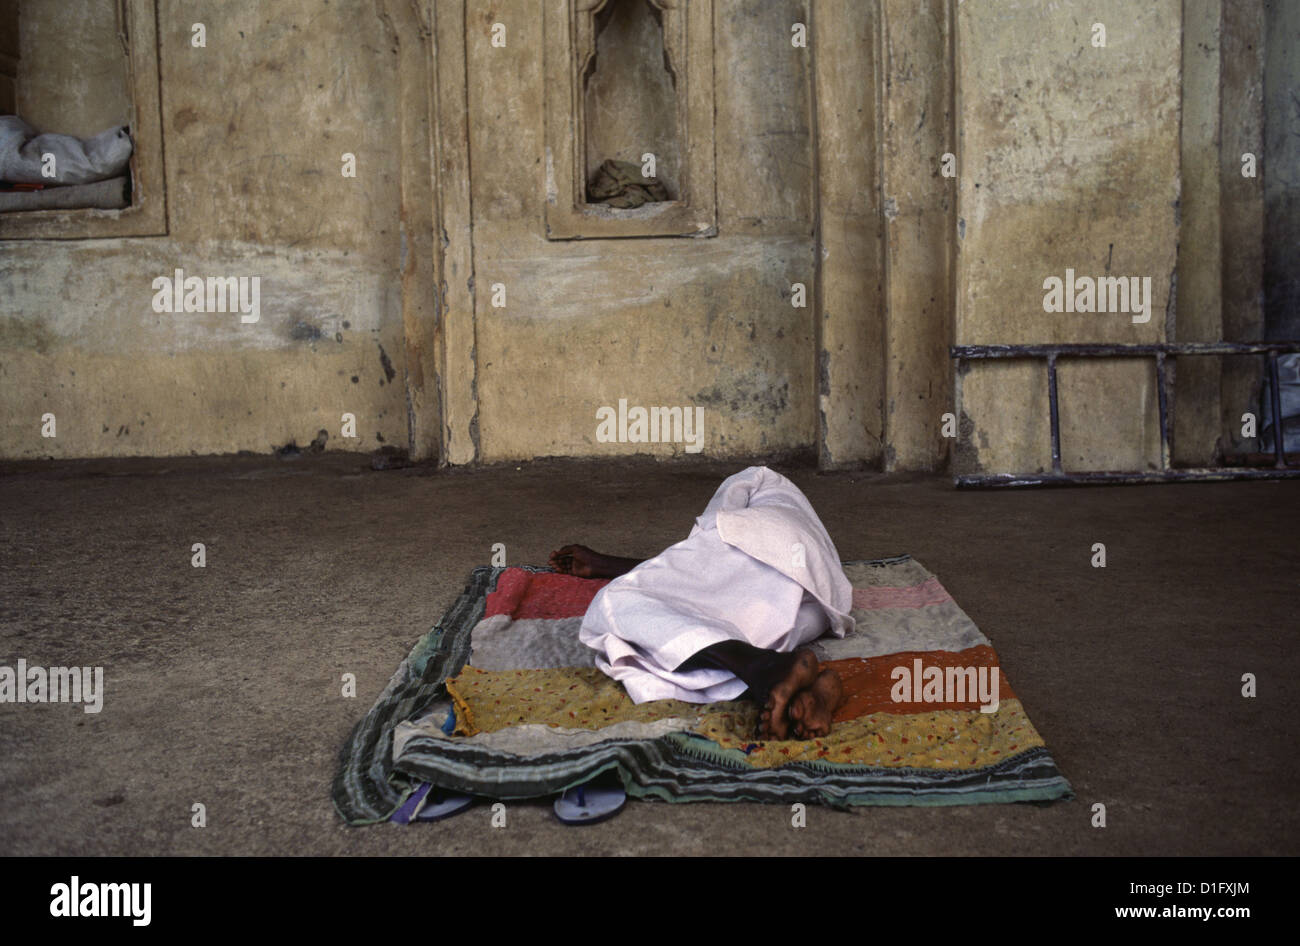 A homeless person sleeping in a mosque courtyard Bijapur Tamil Nadu India - Stock Image